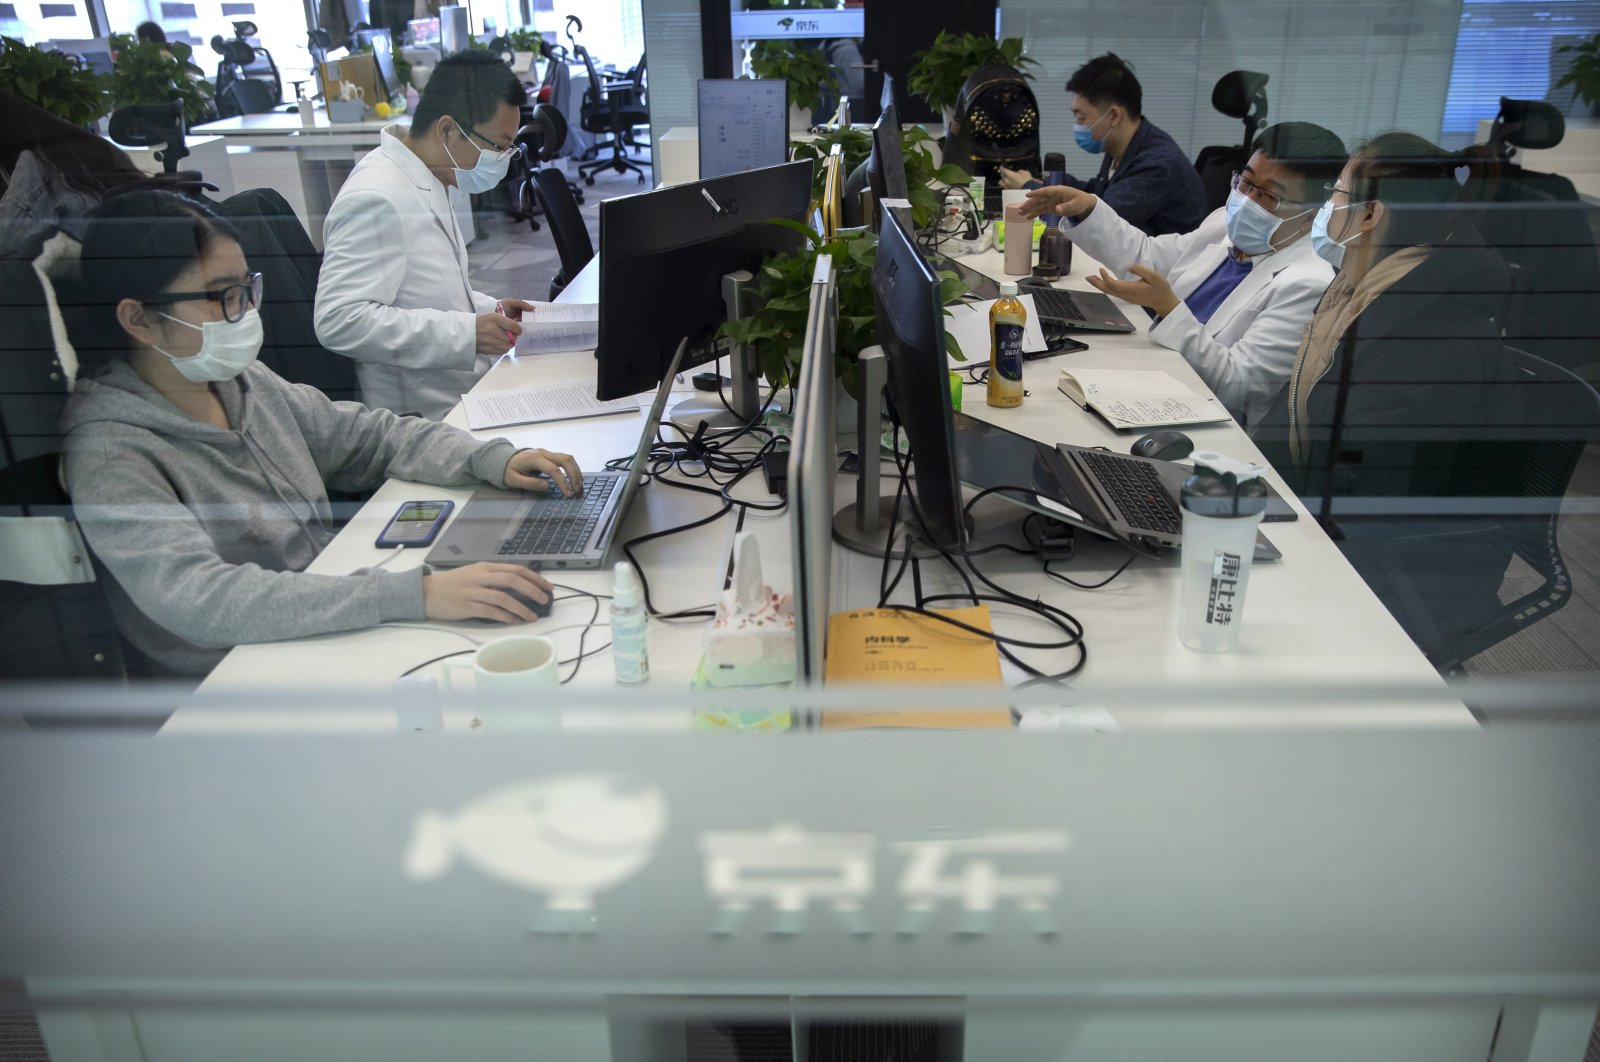 JD Health doctors use computers to chat online as they consult with patients at the JD.com headquarters in Beijing, China, March 27, 2020. (AP Photo)